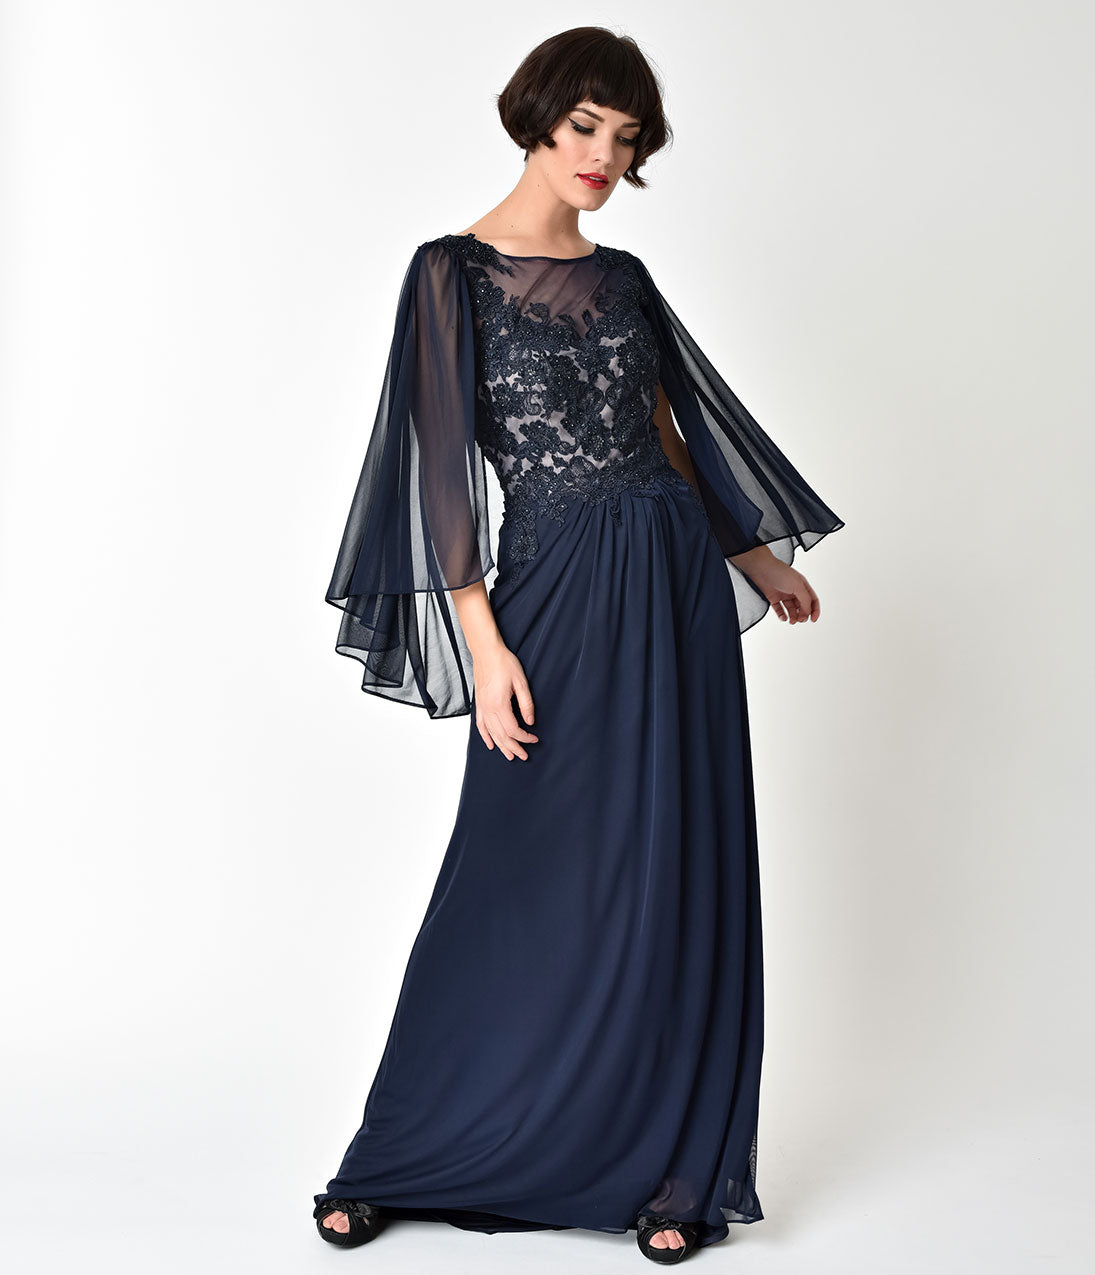 1930s Evening Dresses | Old Hollywood Dress Navy Blue Embellished Mesh Sleeved Cape Gown $238.00 AT vintagedancer.com